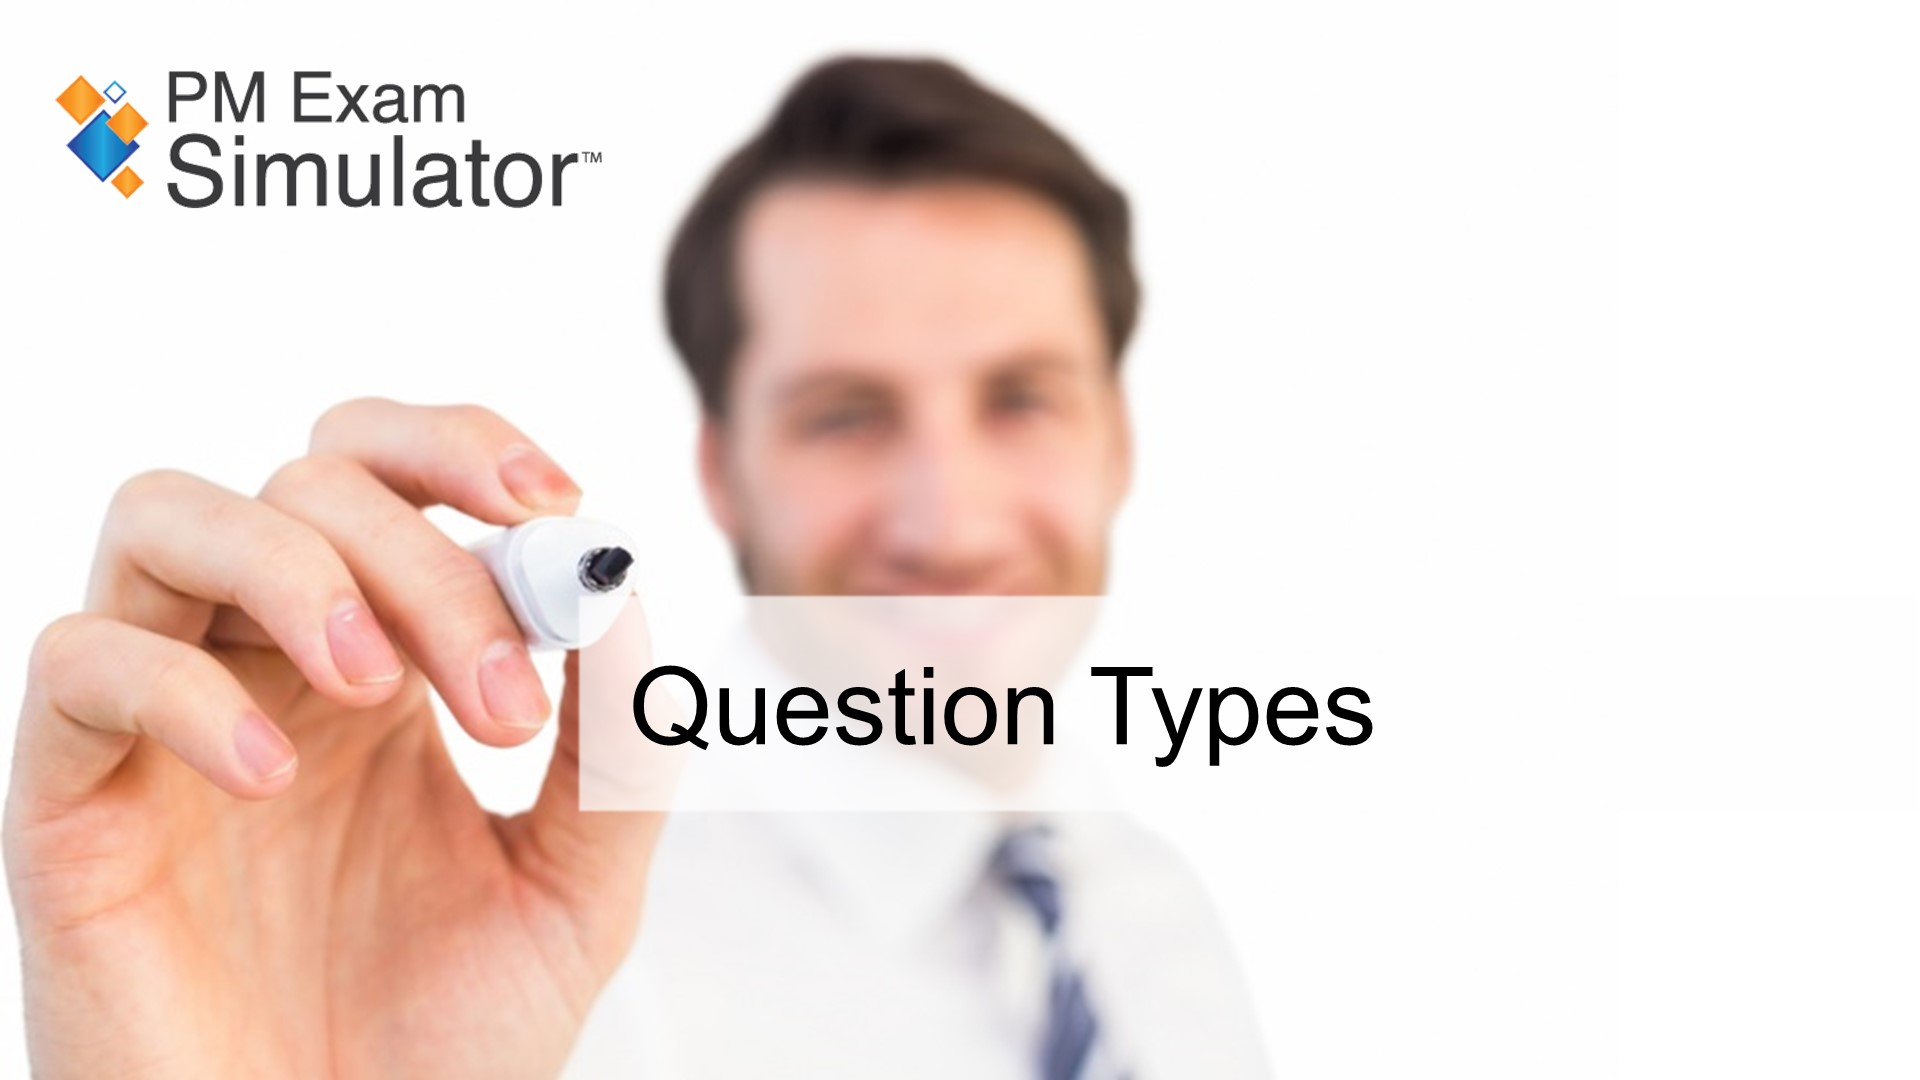 Question Types in the Simulator